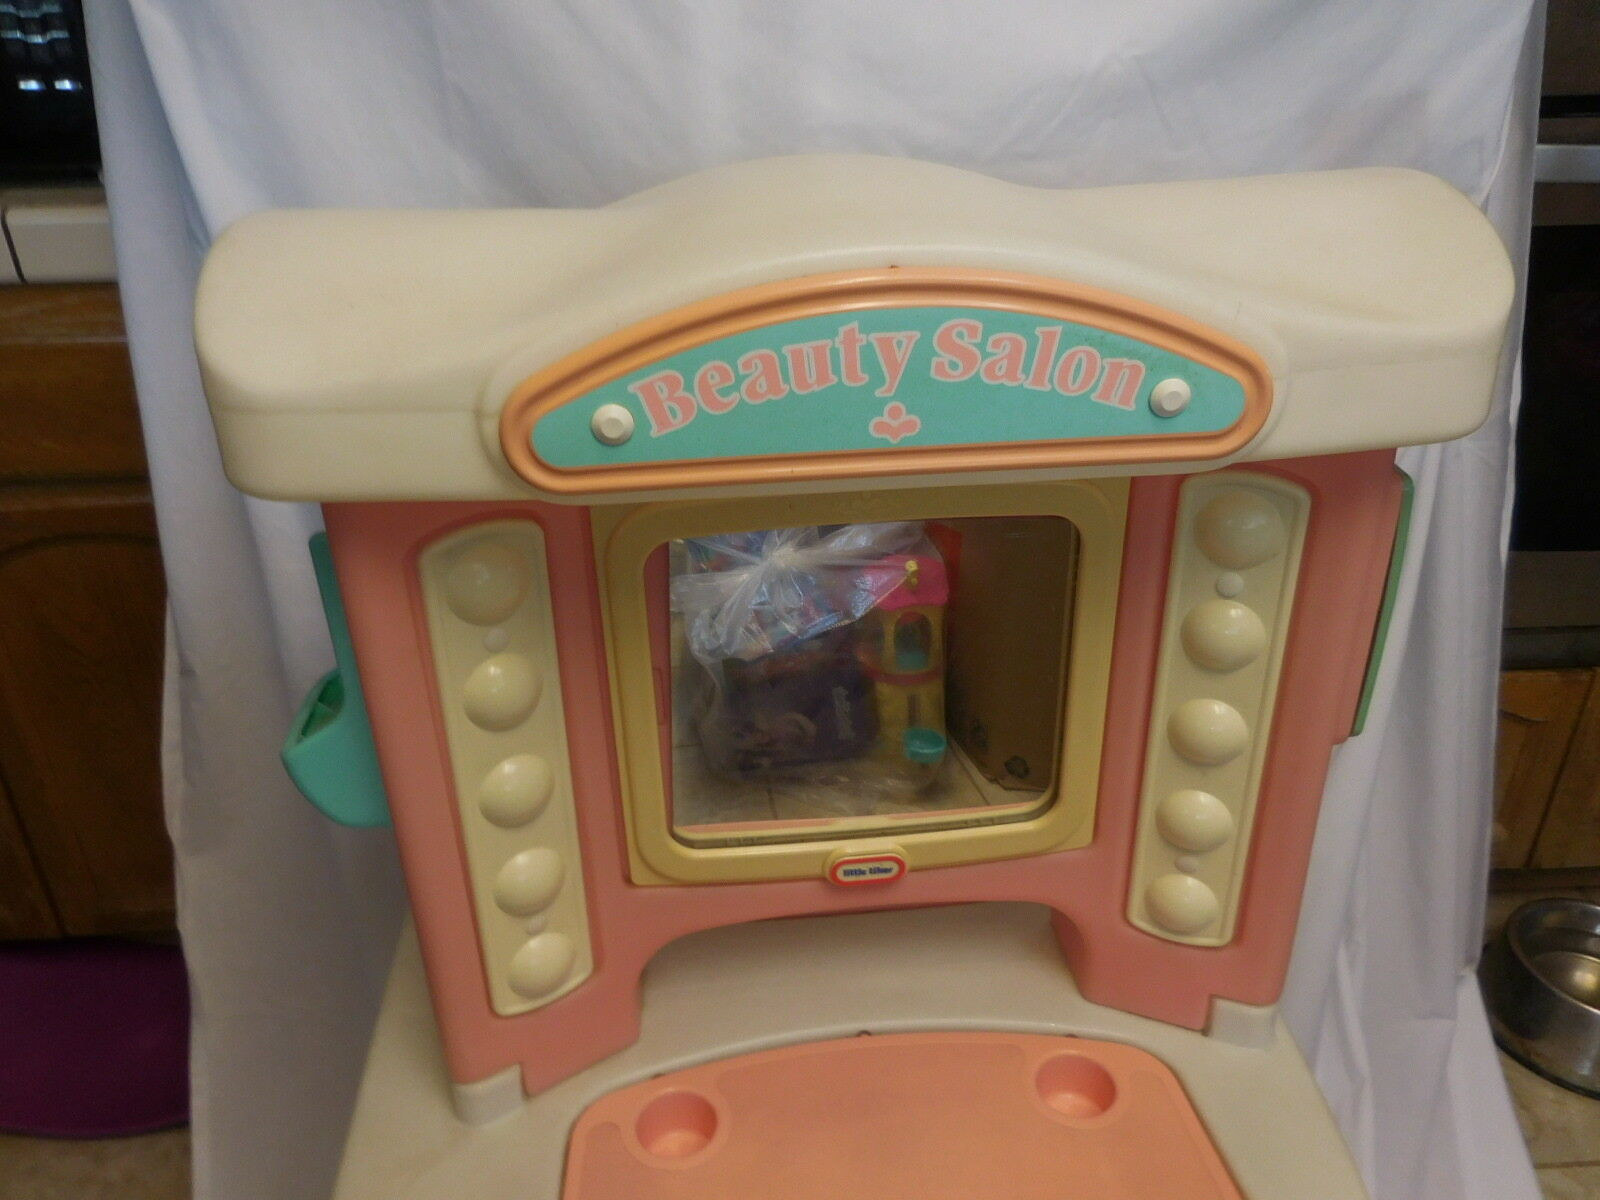 Little Tikes Beauty Salon Vanity Makeup Play Set Sink Hair Hair Hair Mirror Vintage 05d663